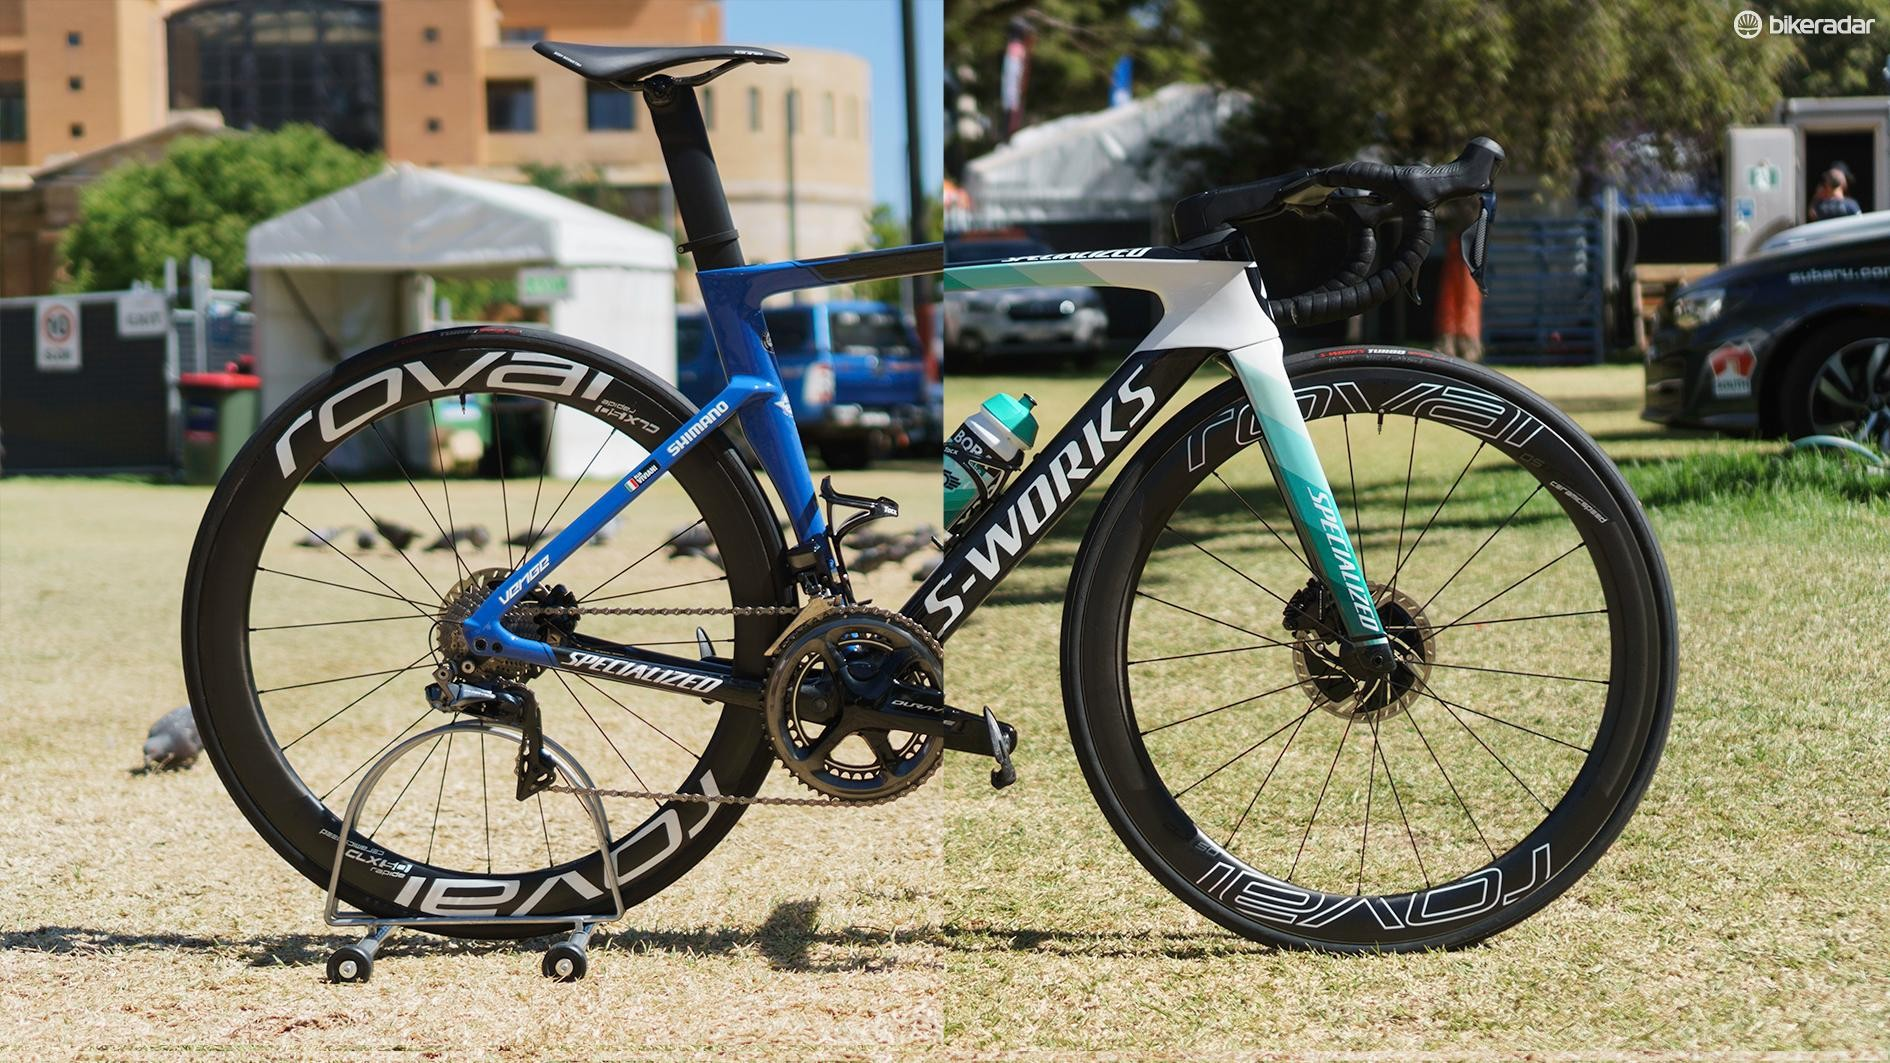 Through the magic of Photoshop, BikeRadar introduces the S-Works Venge WorldTour Team Hybrid